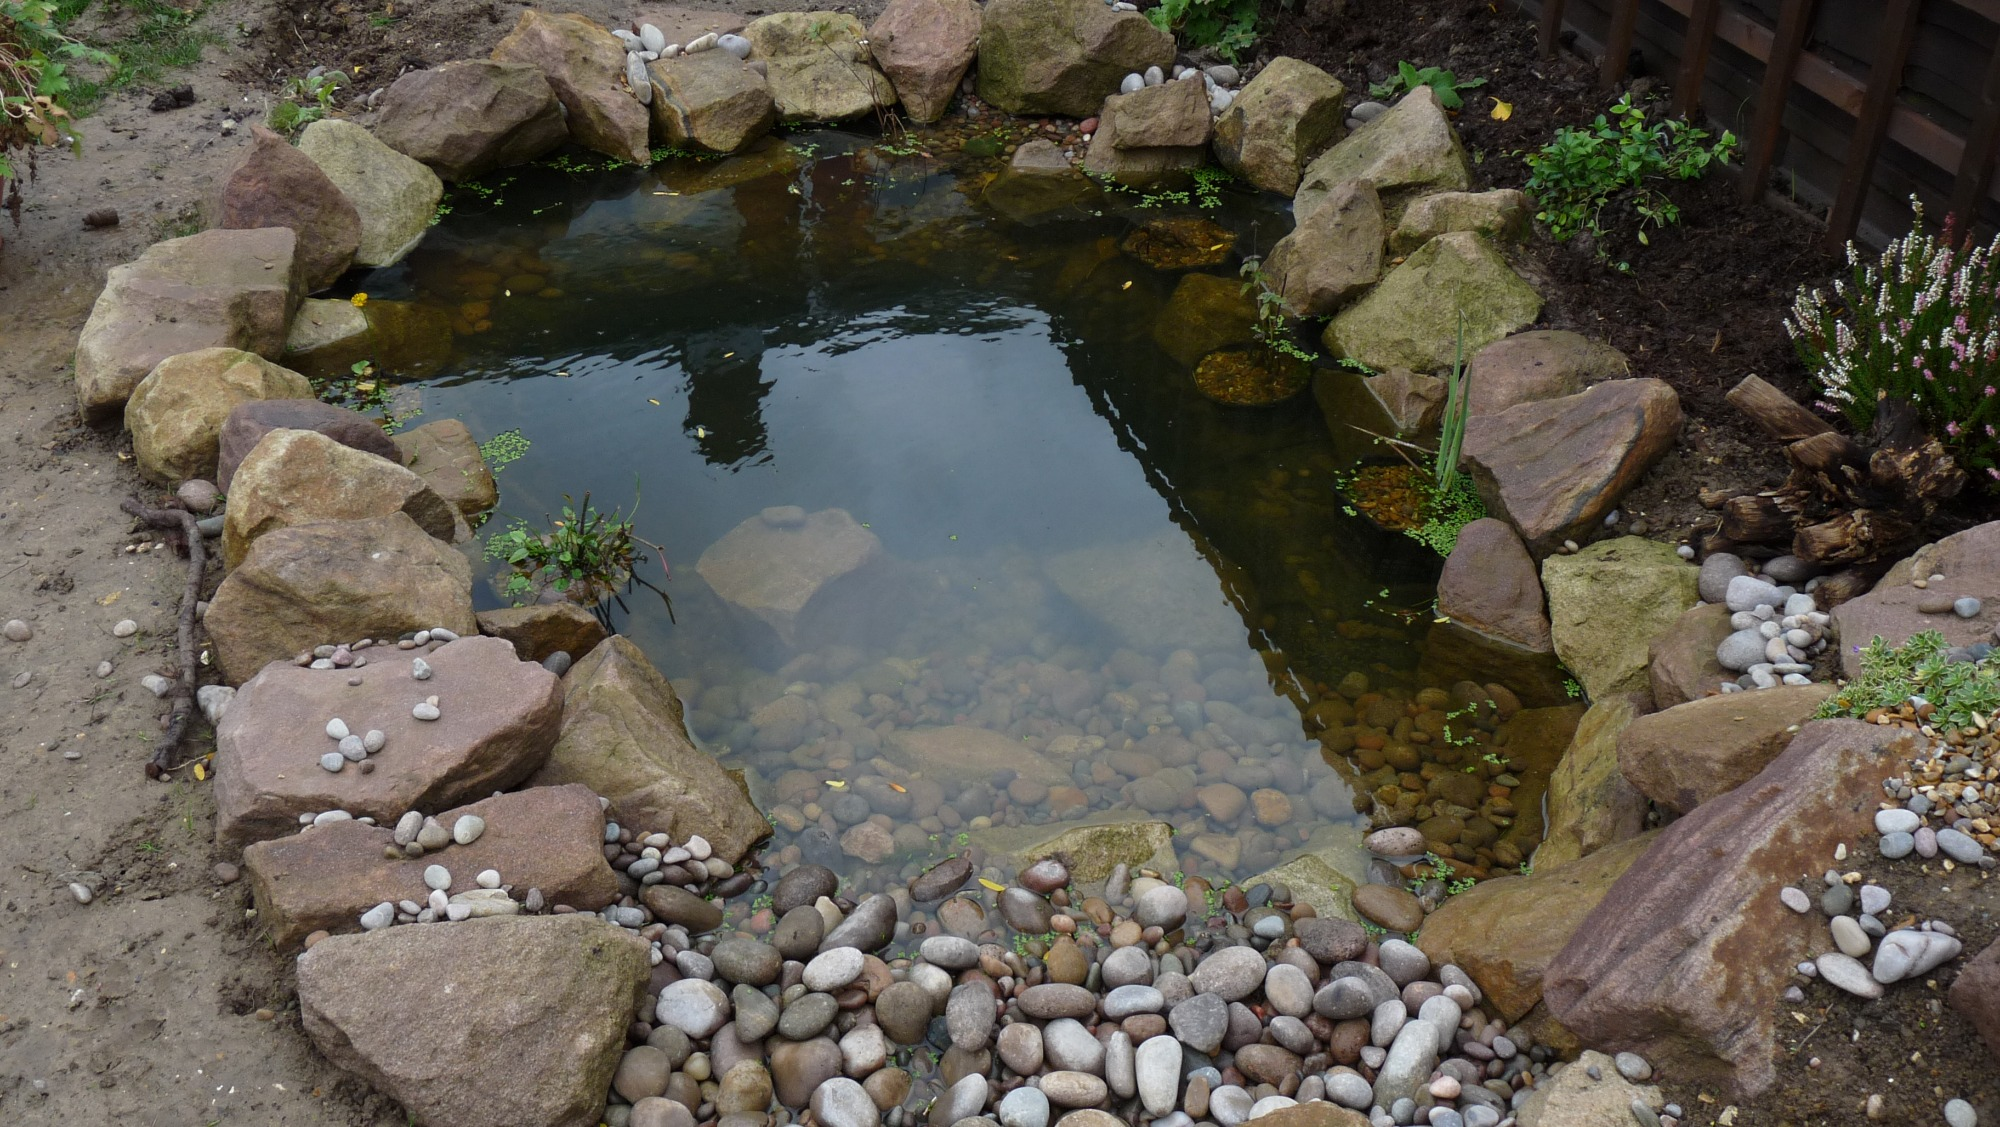 Ponds with rock edging and pebbles forum for Pond shape ideas